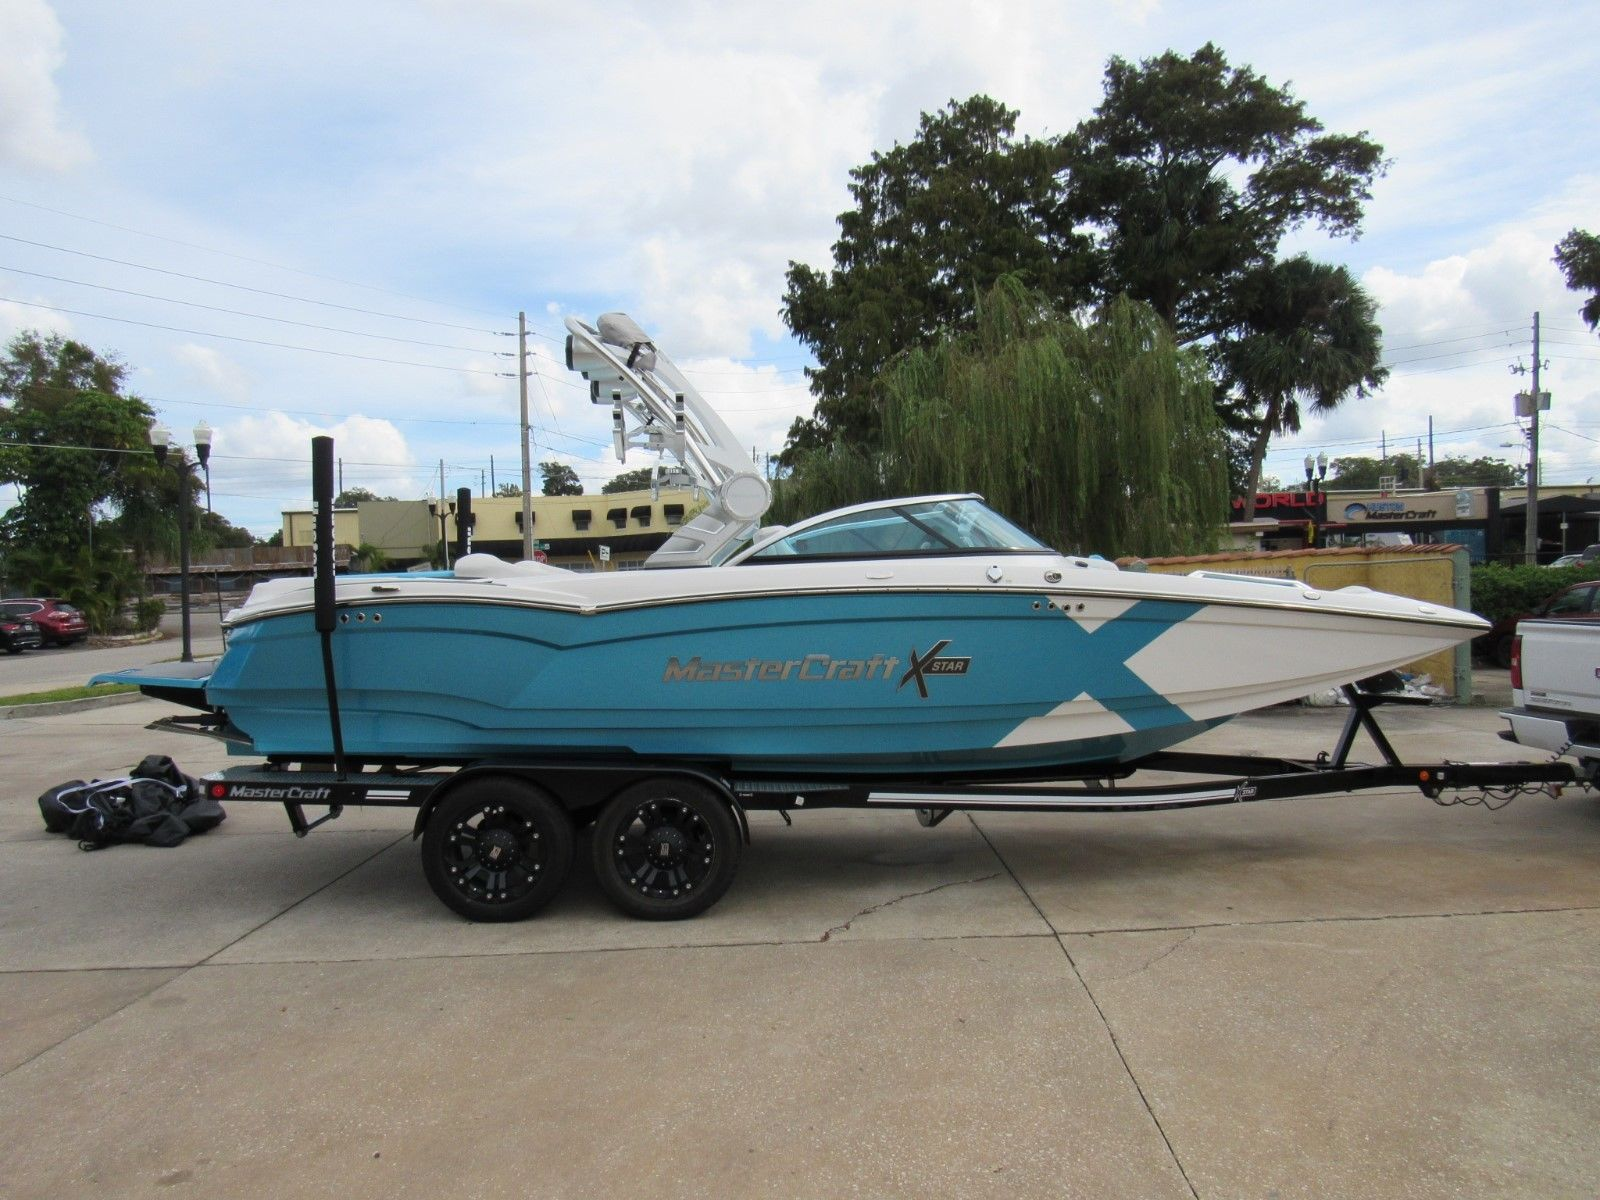 Mastercraft Xstar 2017 For Sale For 129950 Boats From